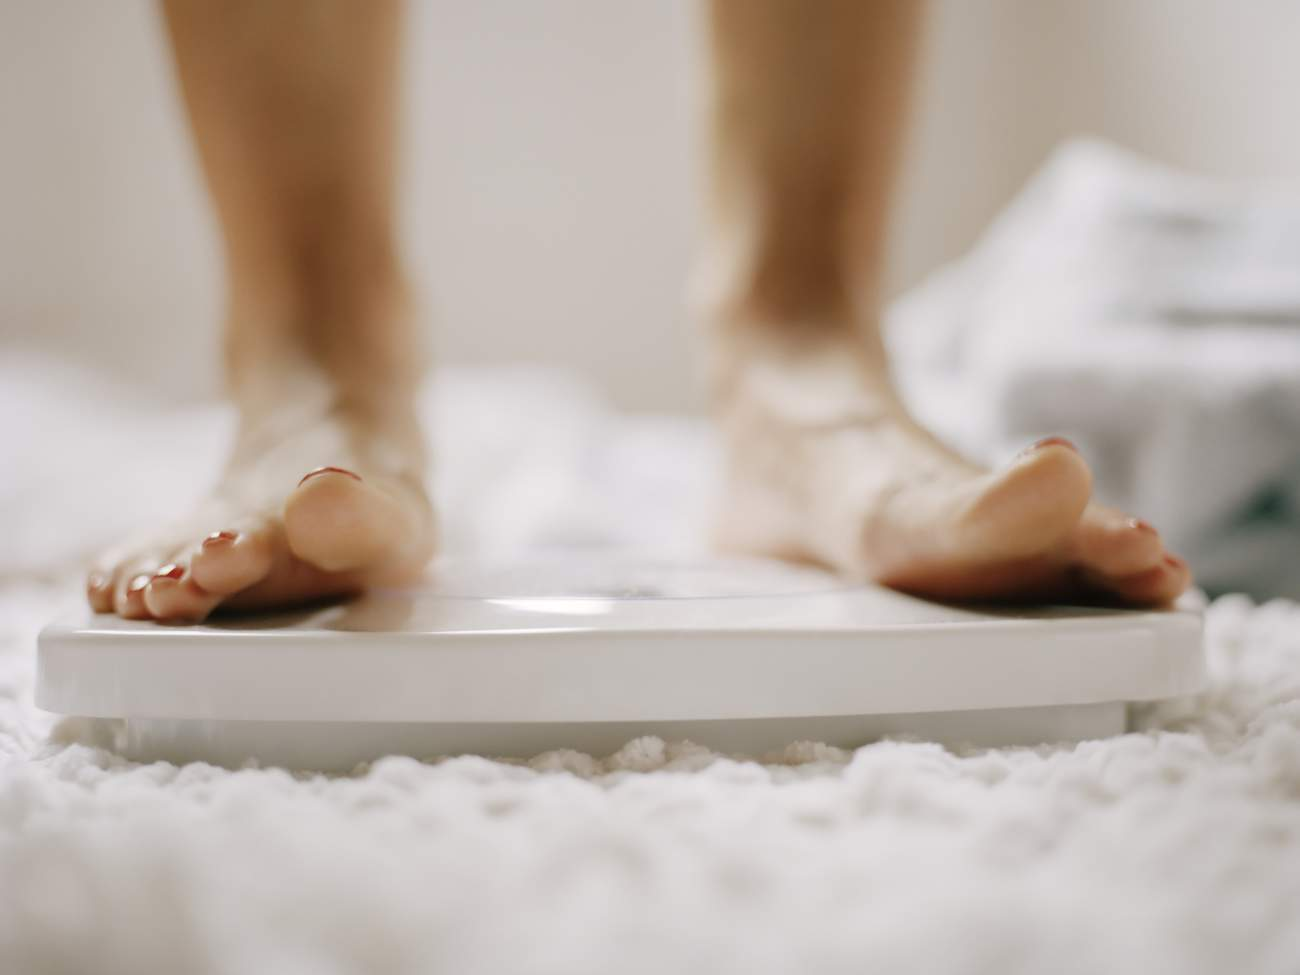 scale weight loss resolution goals